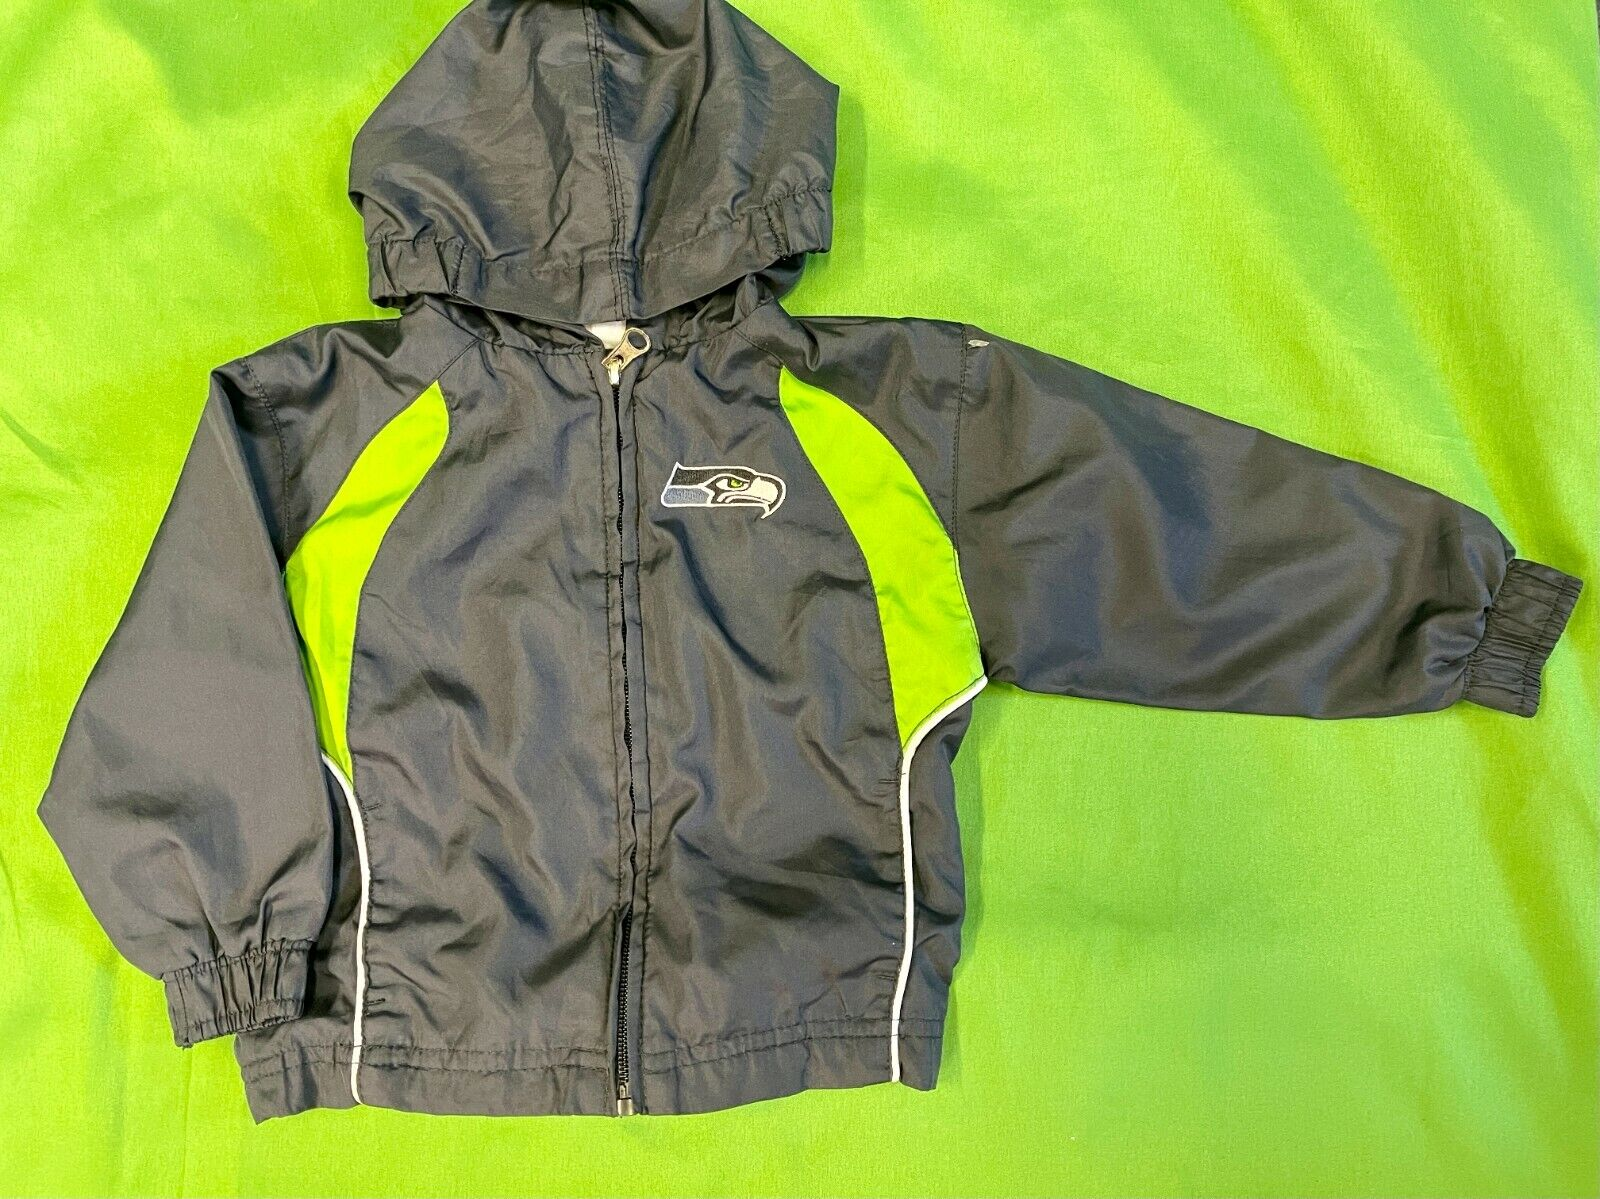 B622/140 NFL Seattle Seahawks Toddler Windbreaker Jacket 24 months